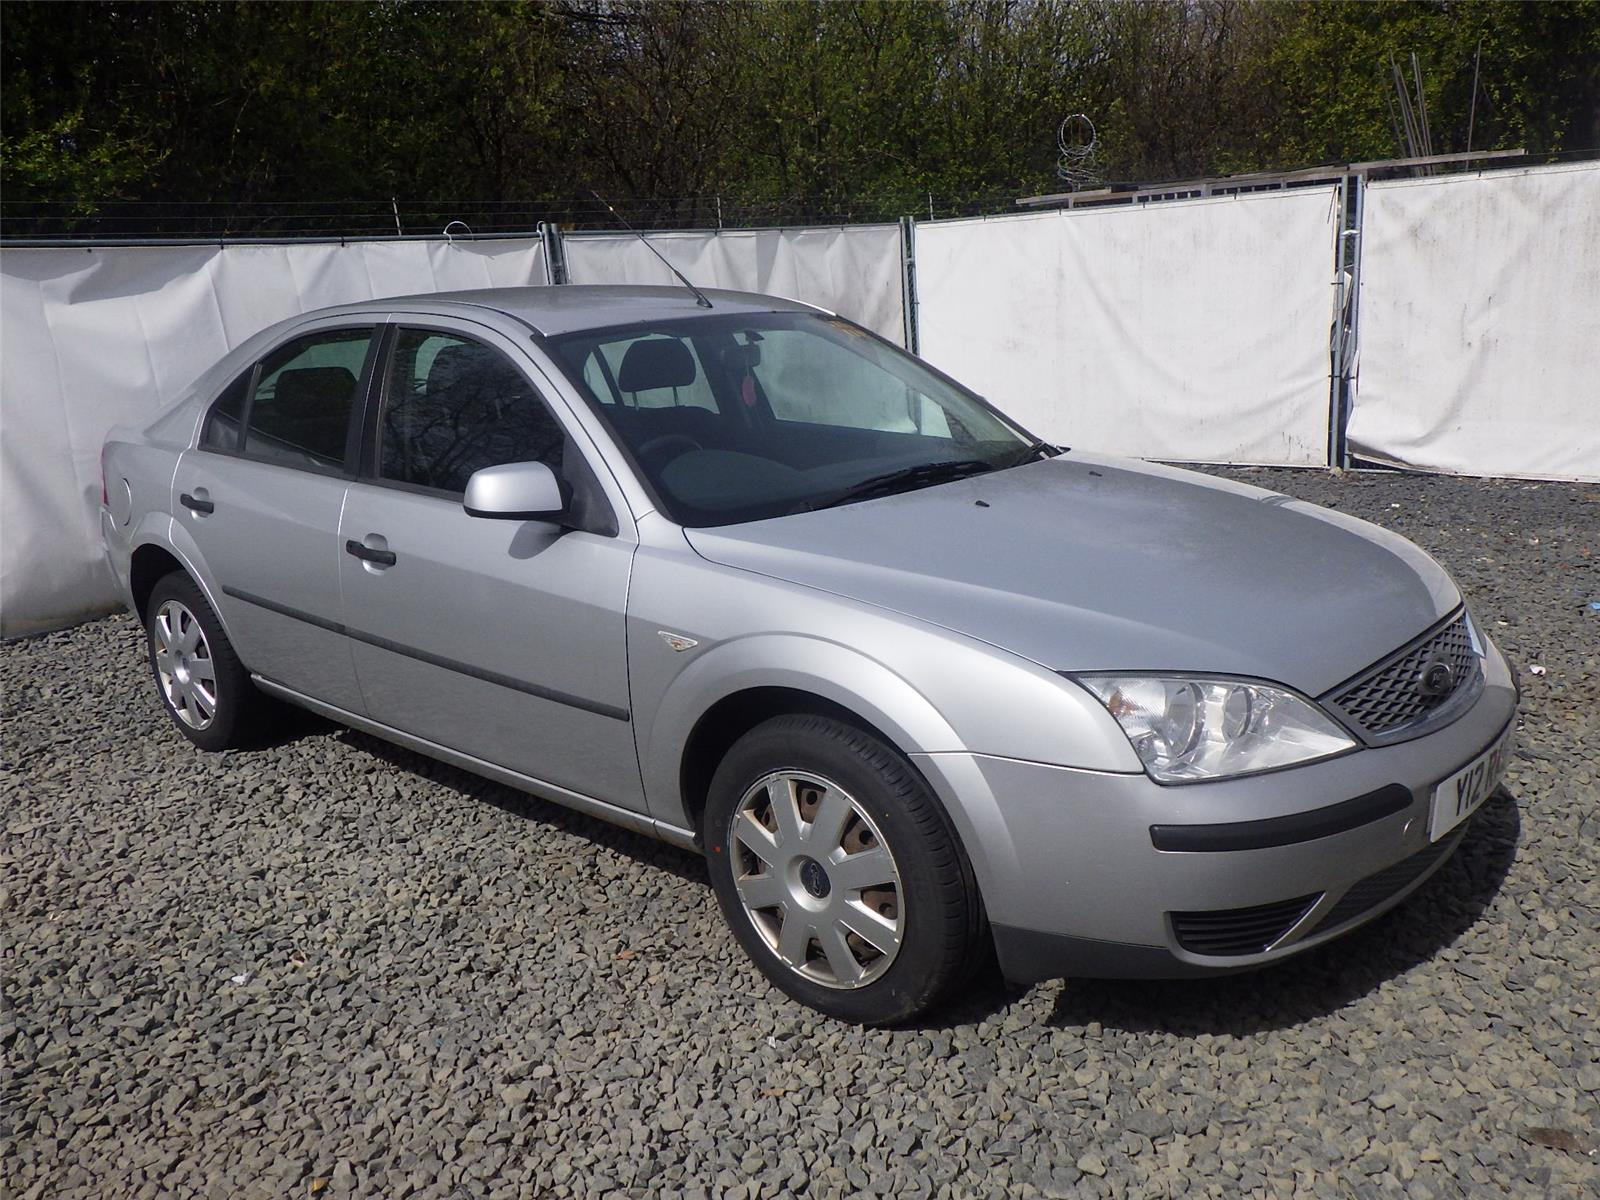 ford mondeo 2003 to 2007 injectors diesel manual for sale from rh scbvehicledismantlers co uk ford mondeo mk3 user manual pdf ford mondeo mk3 user manual pdf